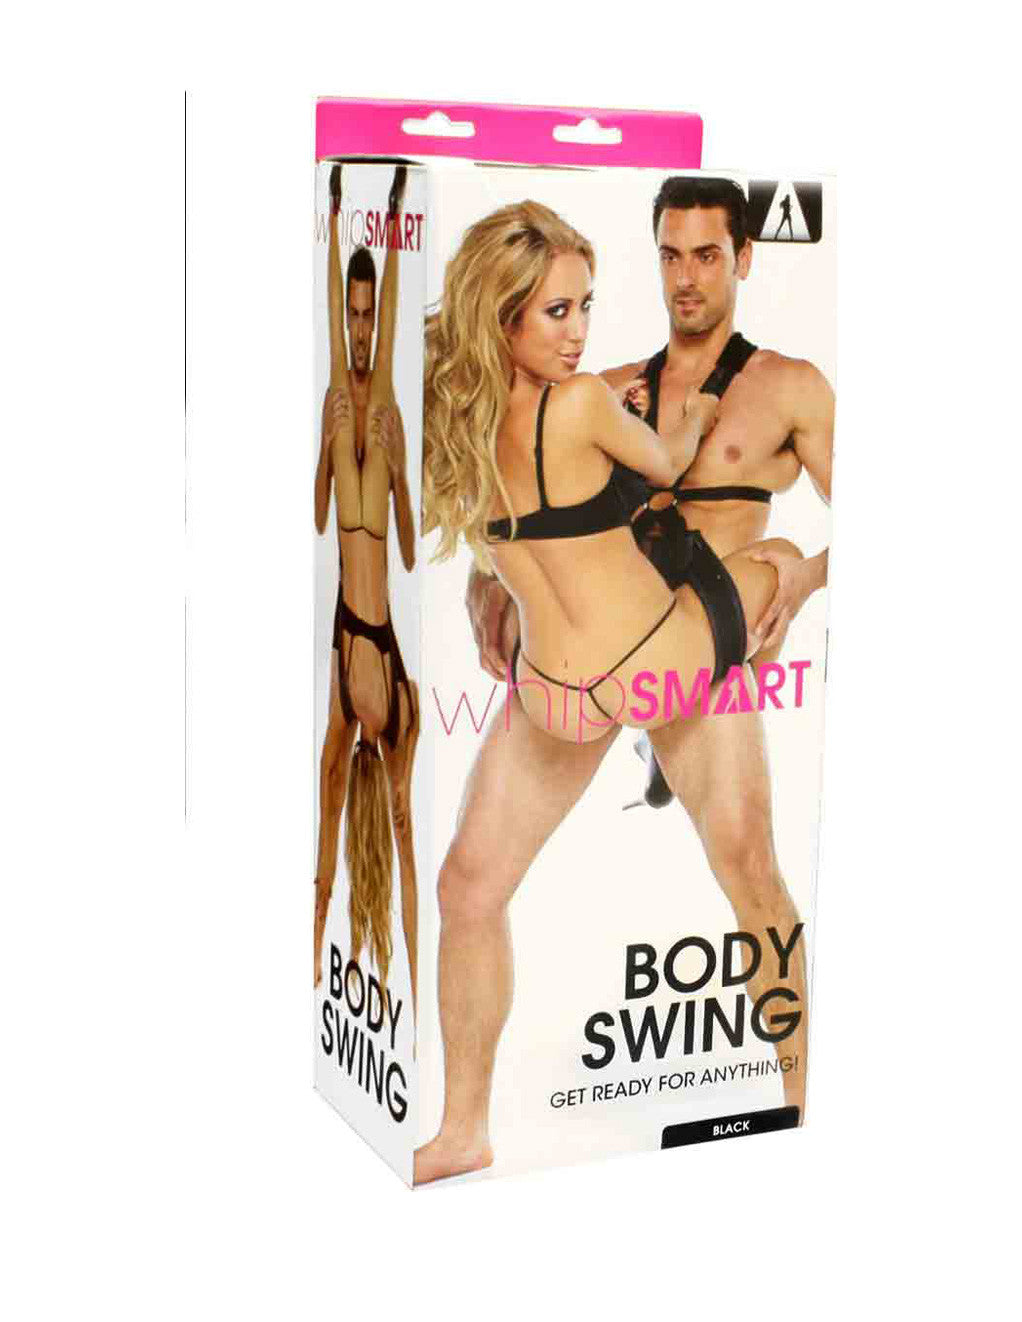 Whipsmart body sex swing packaging